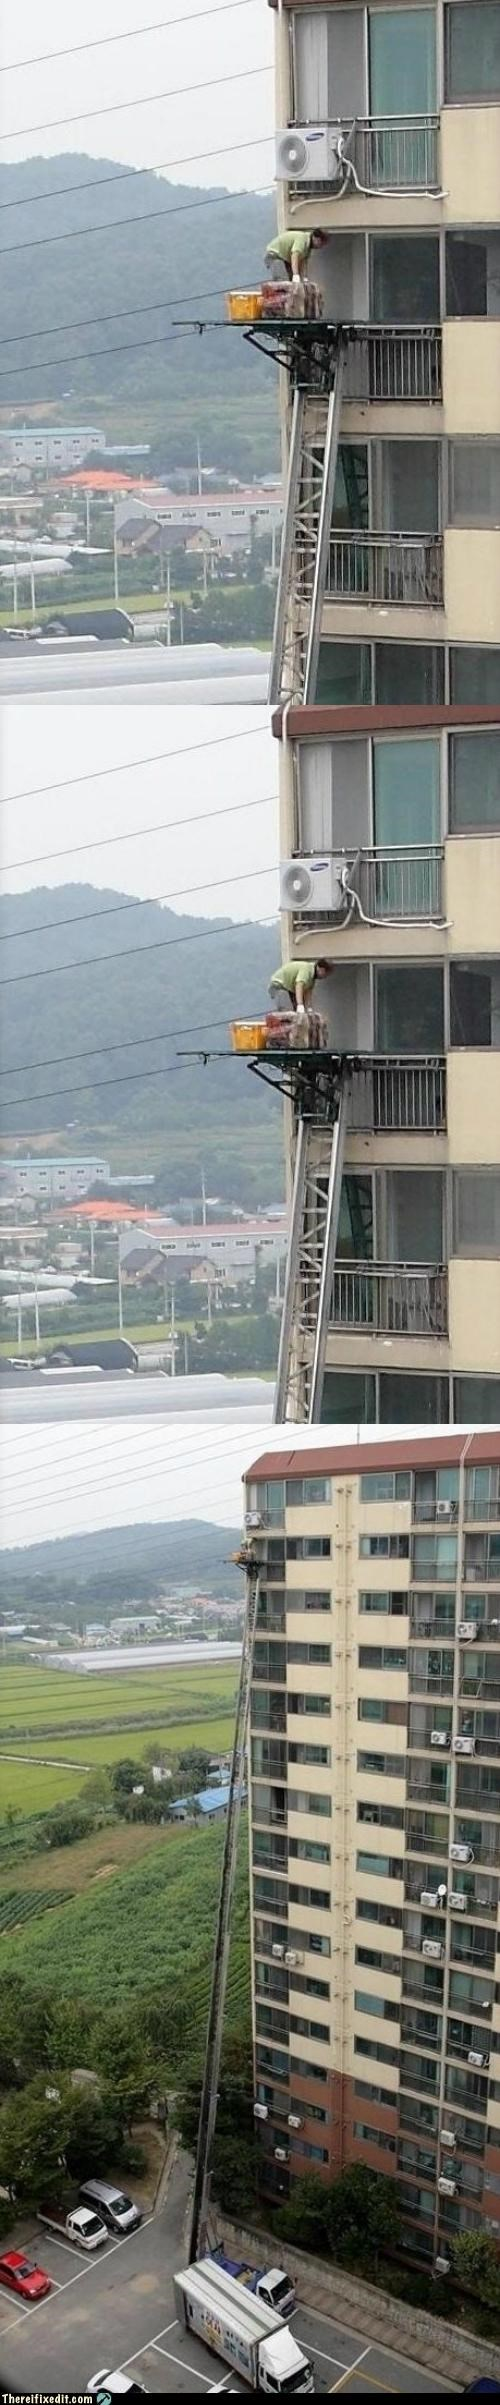 Hall of Fame ladder Professional At Work safety first scary wtf - 5159921408